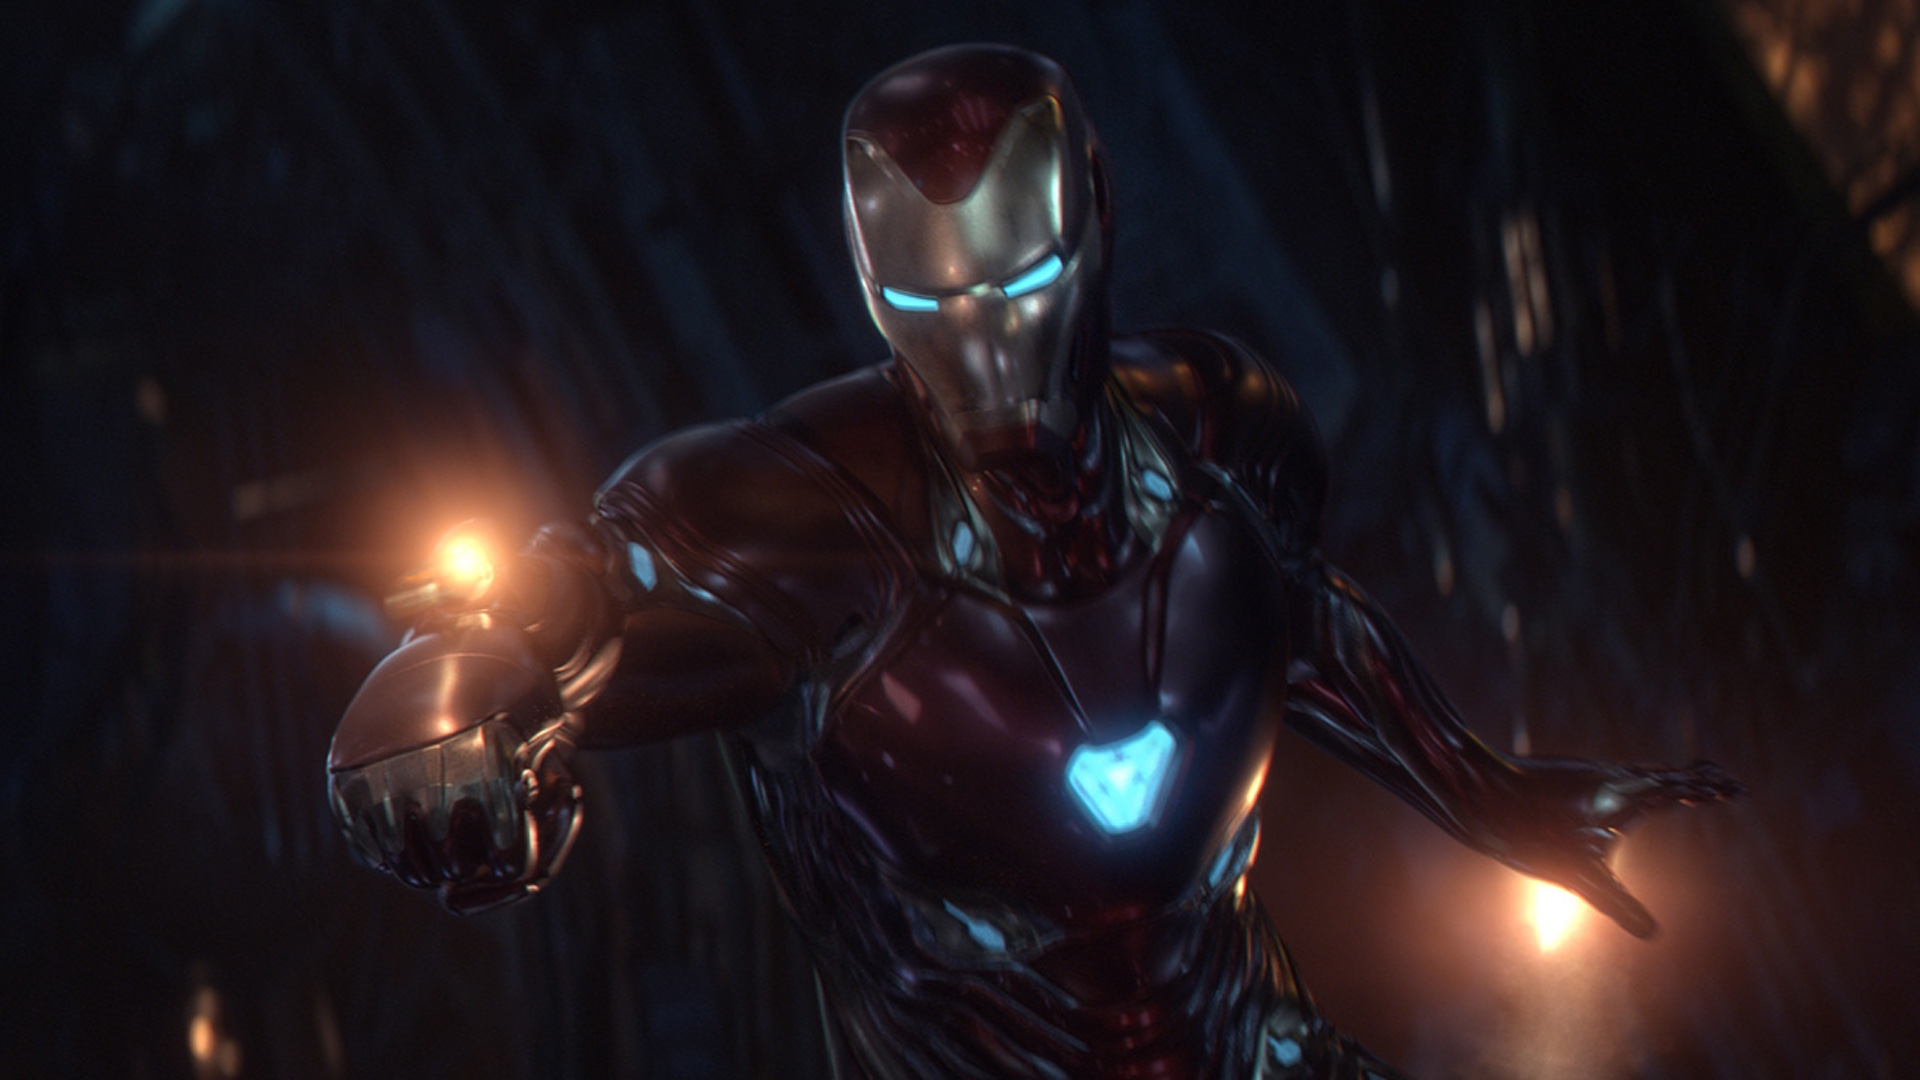 Marvel Fans Think This Avengers 4 Set Photo Shows Iron Man S Proton